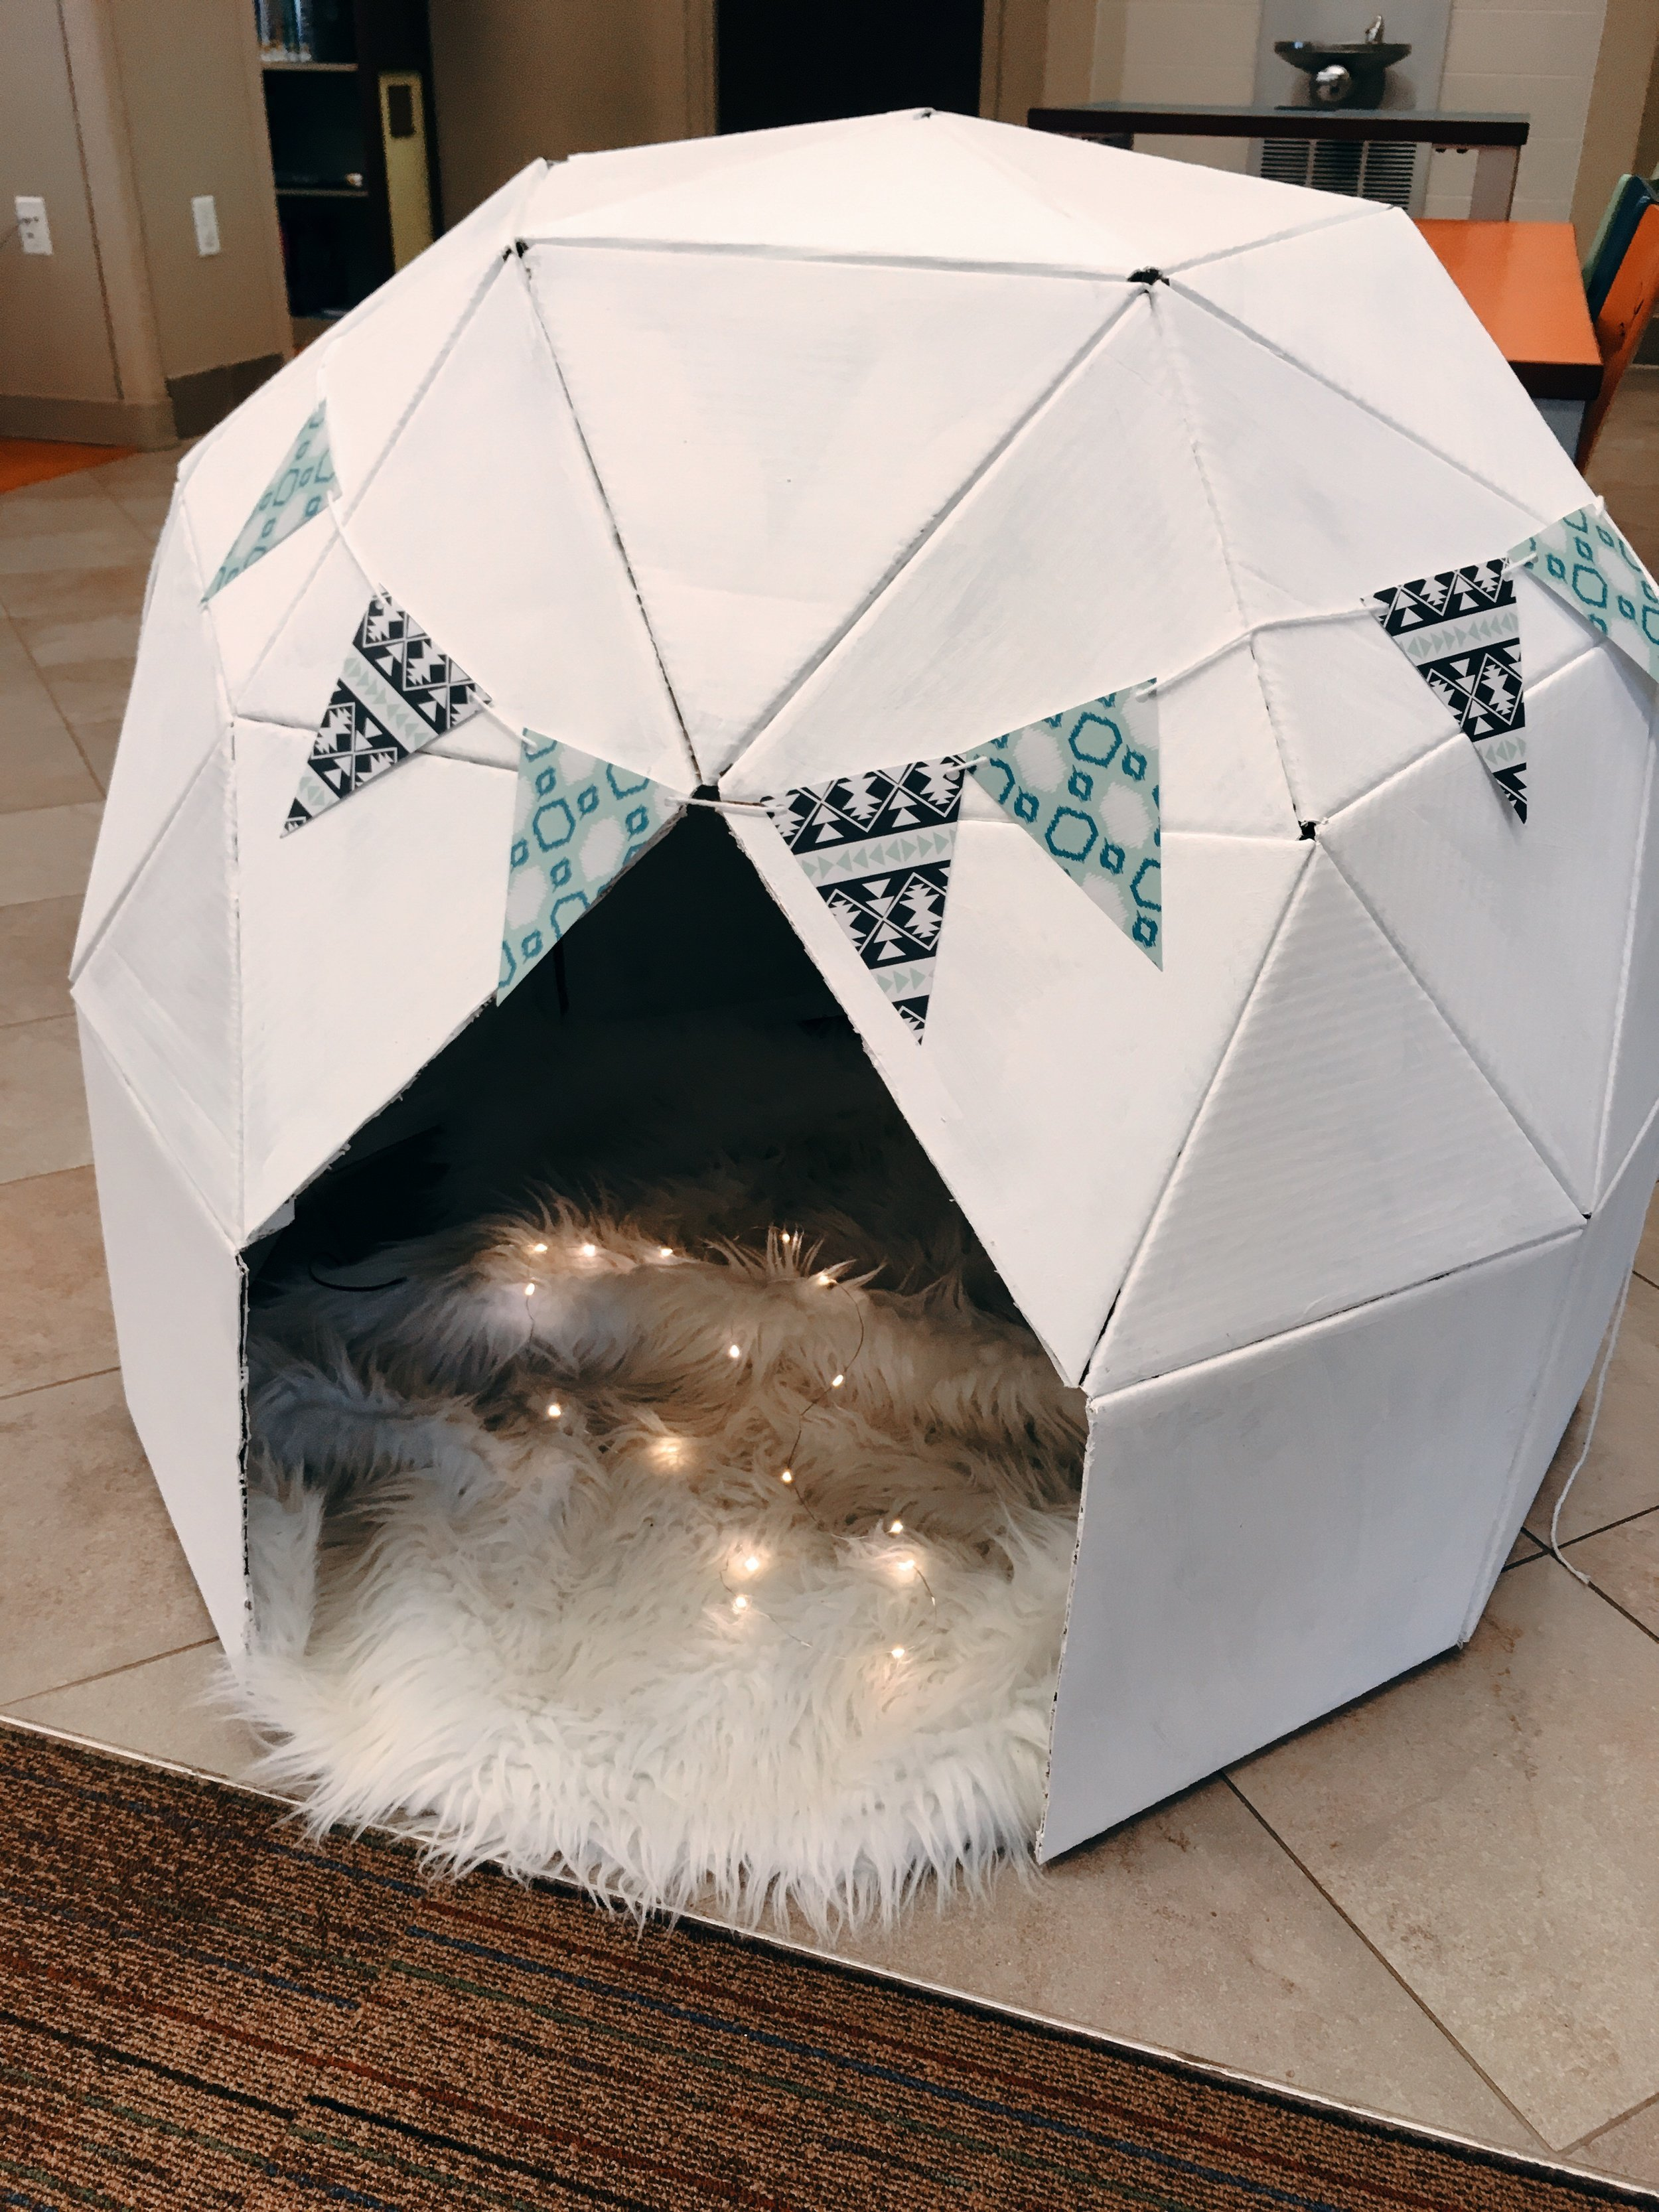 Igloo Playhouse! #diy #cardboardhouse #library #childrenslibrary #playhouse